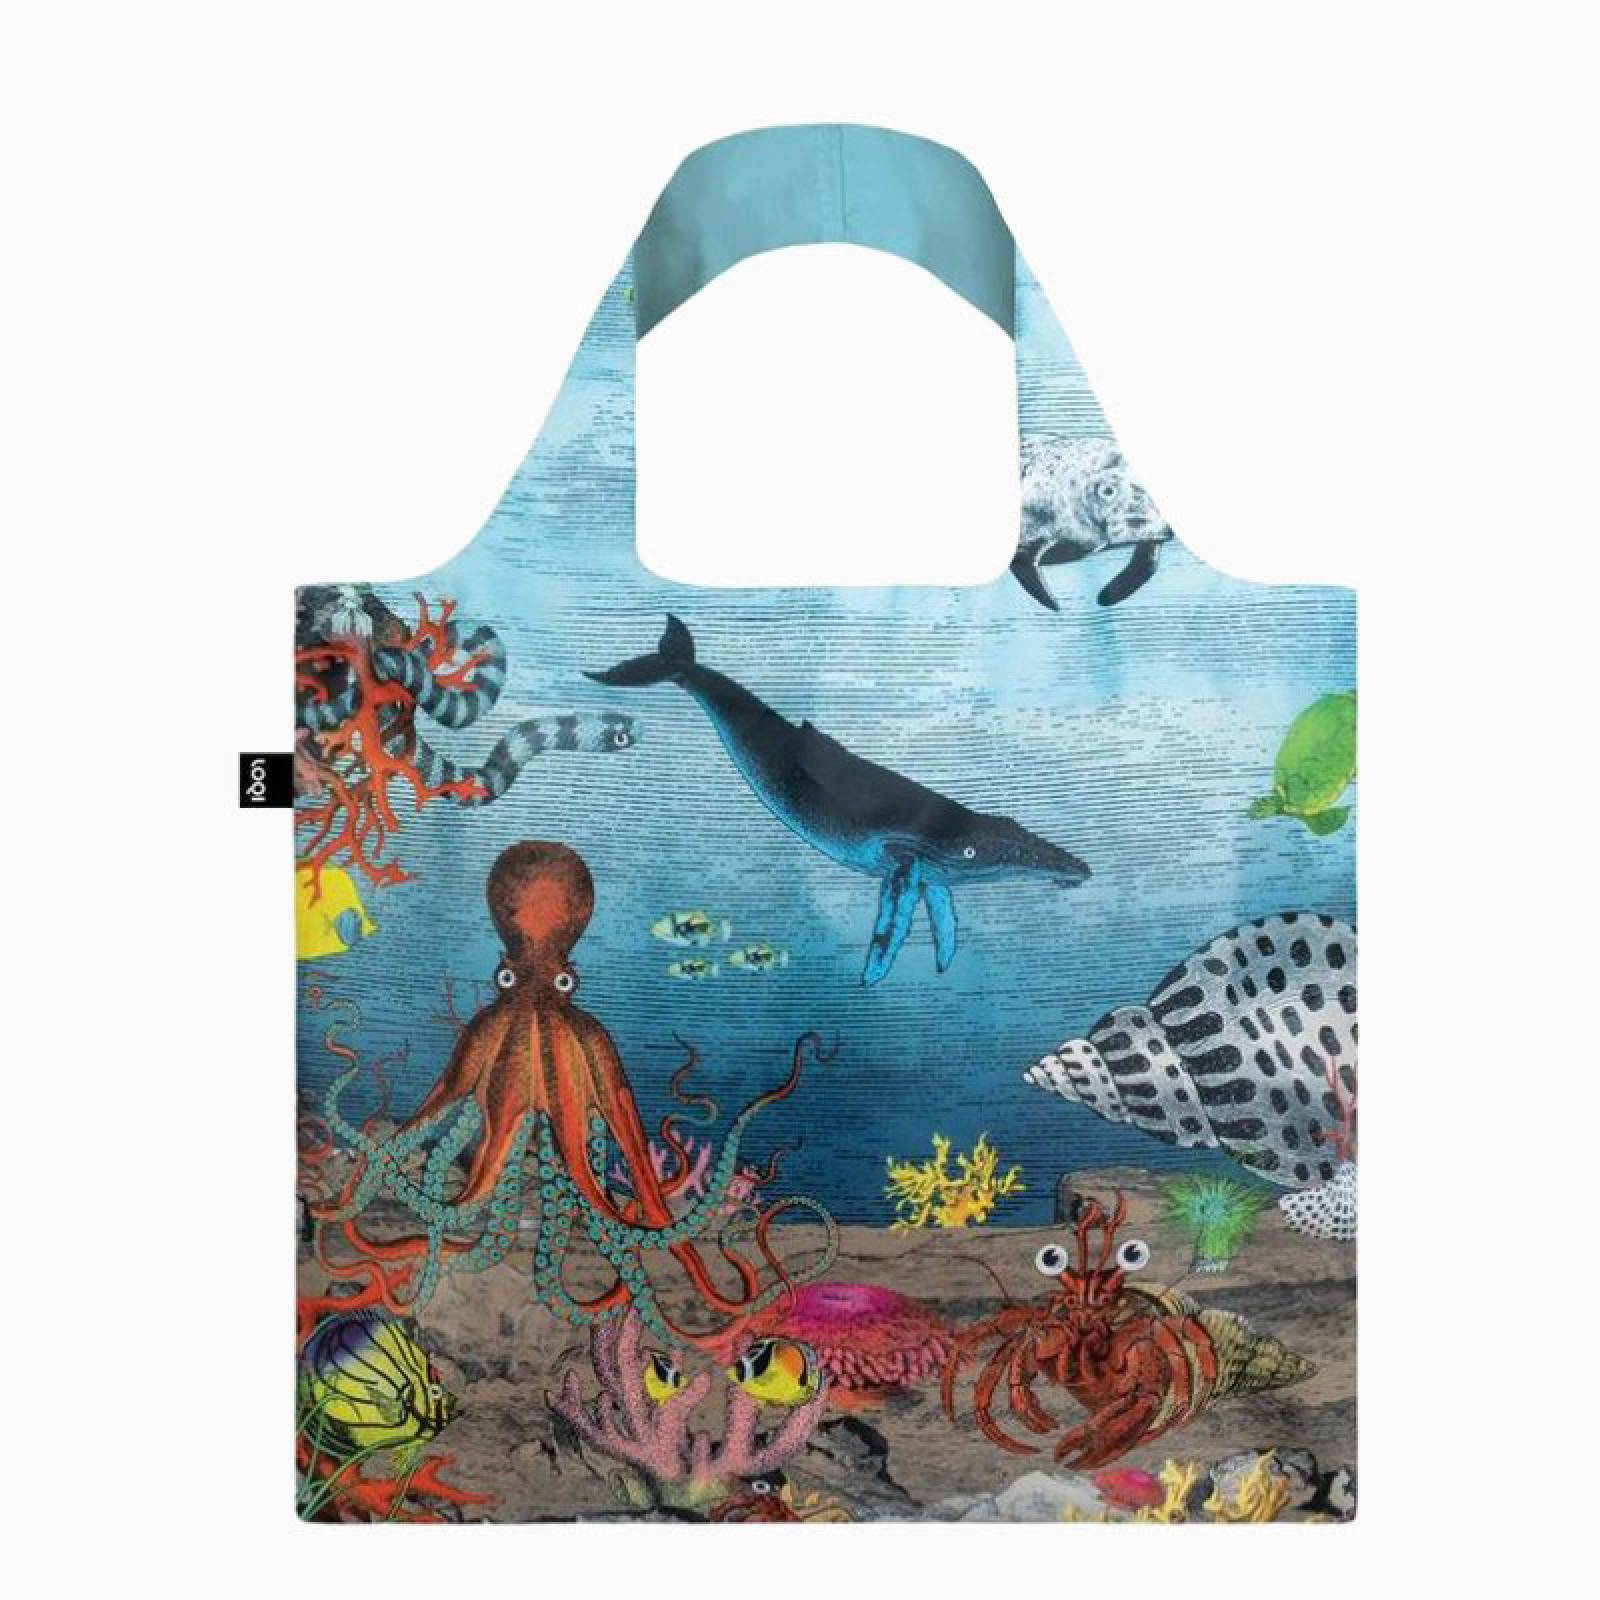 Great Barrier Reef - Reusable Tote Bag With Pouch